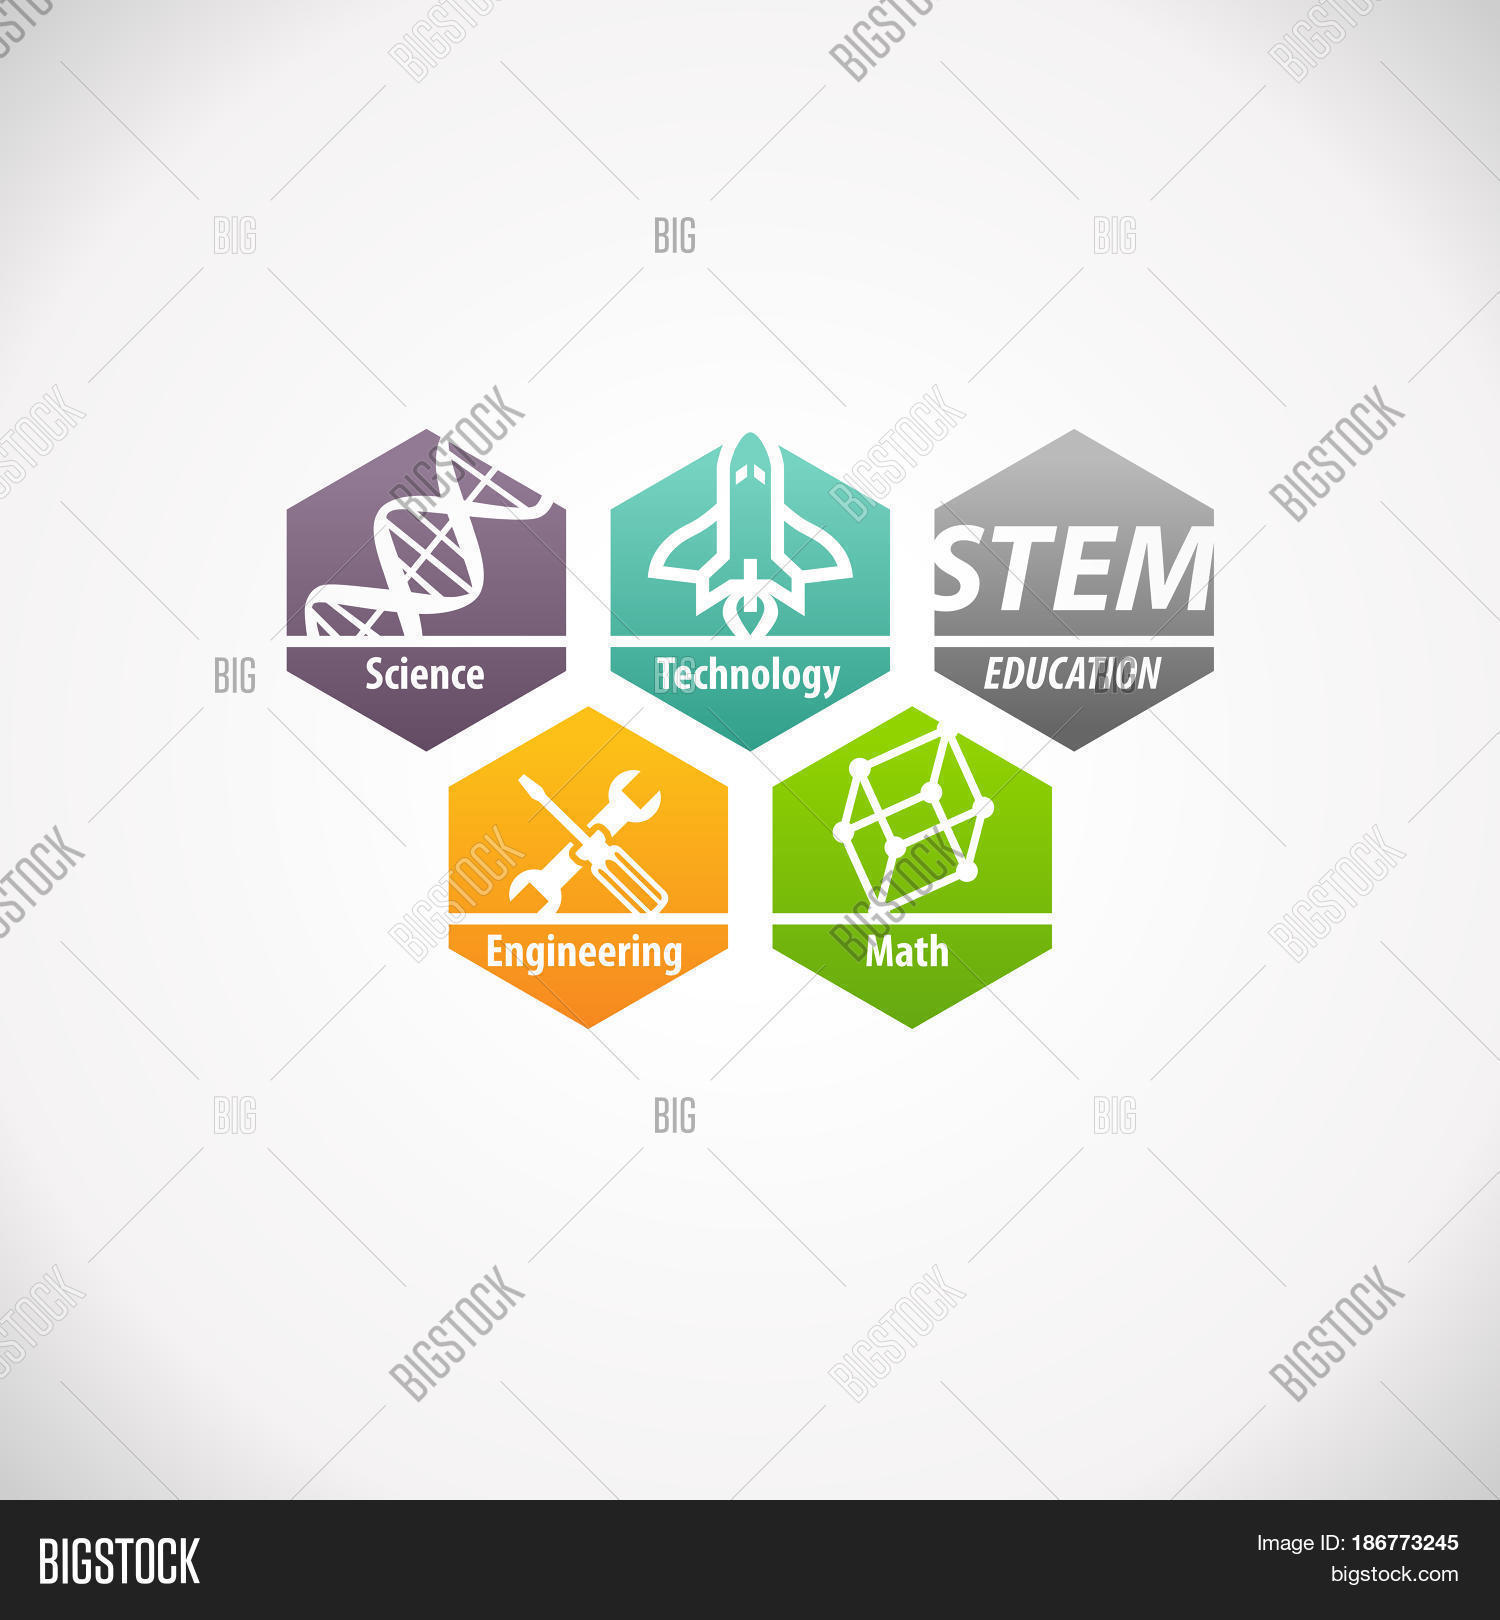 Science Technology Engineering Math: STEM Education Concept Logo. Image & Photo